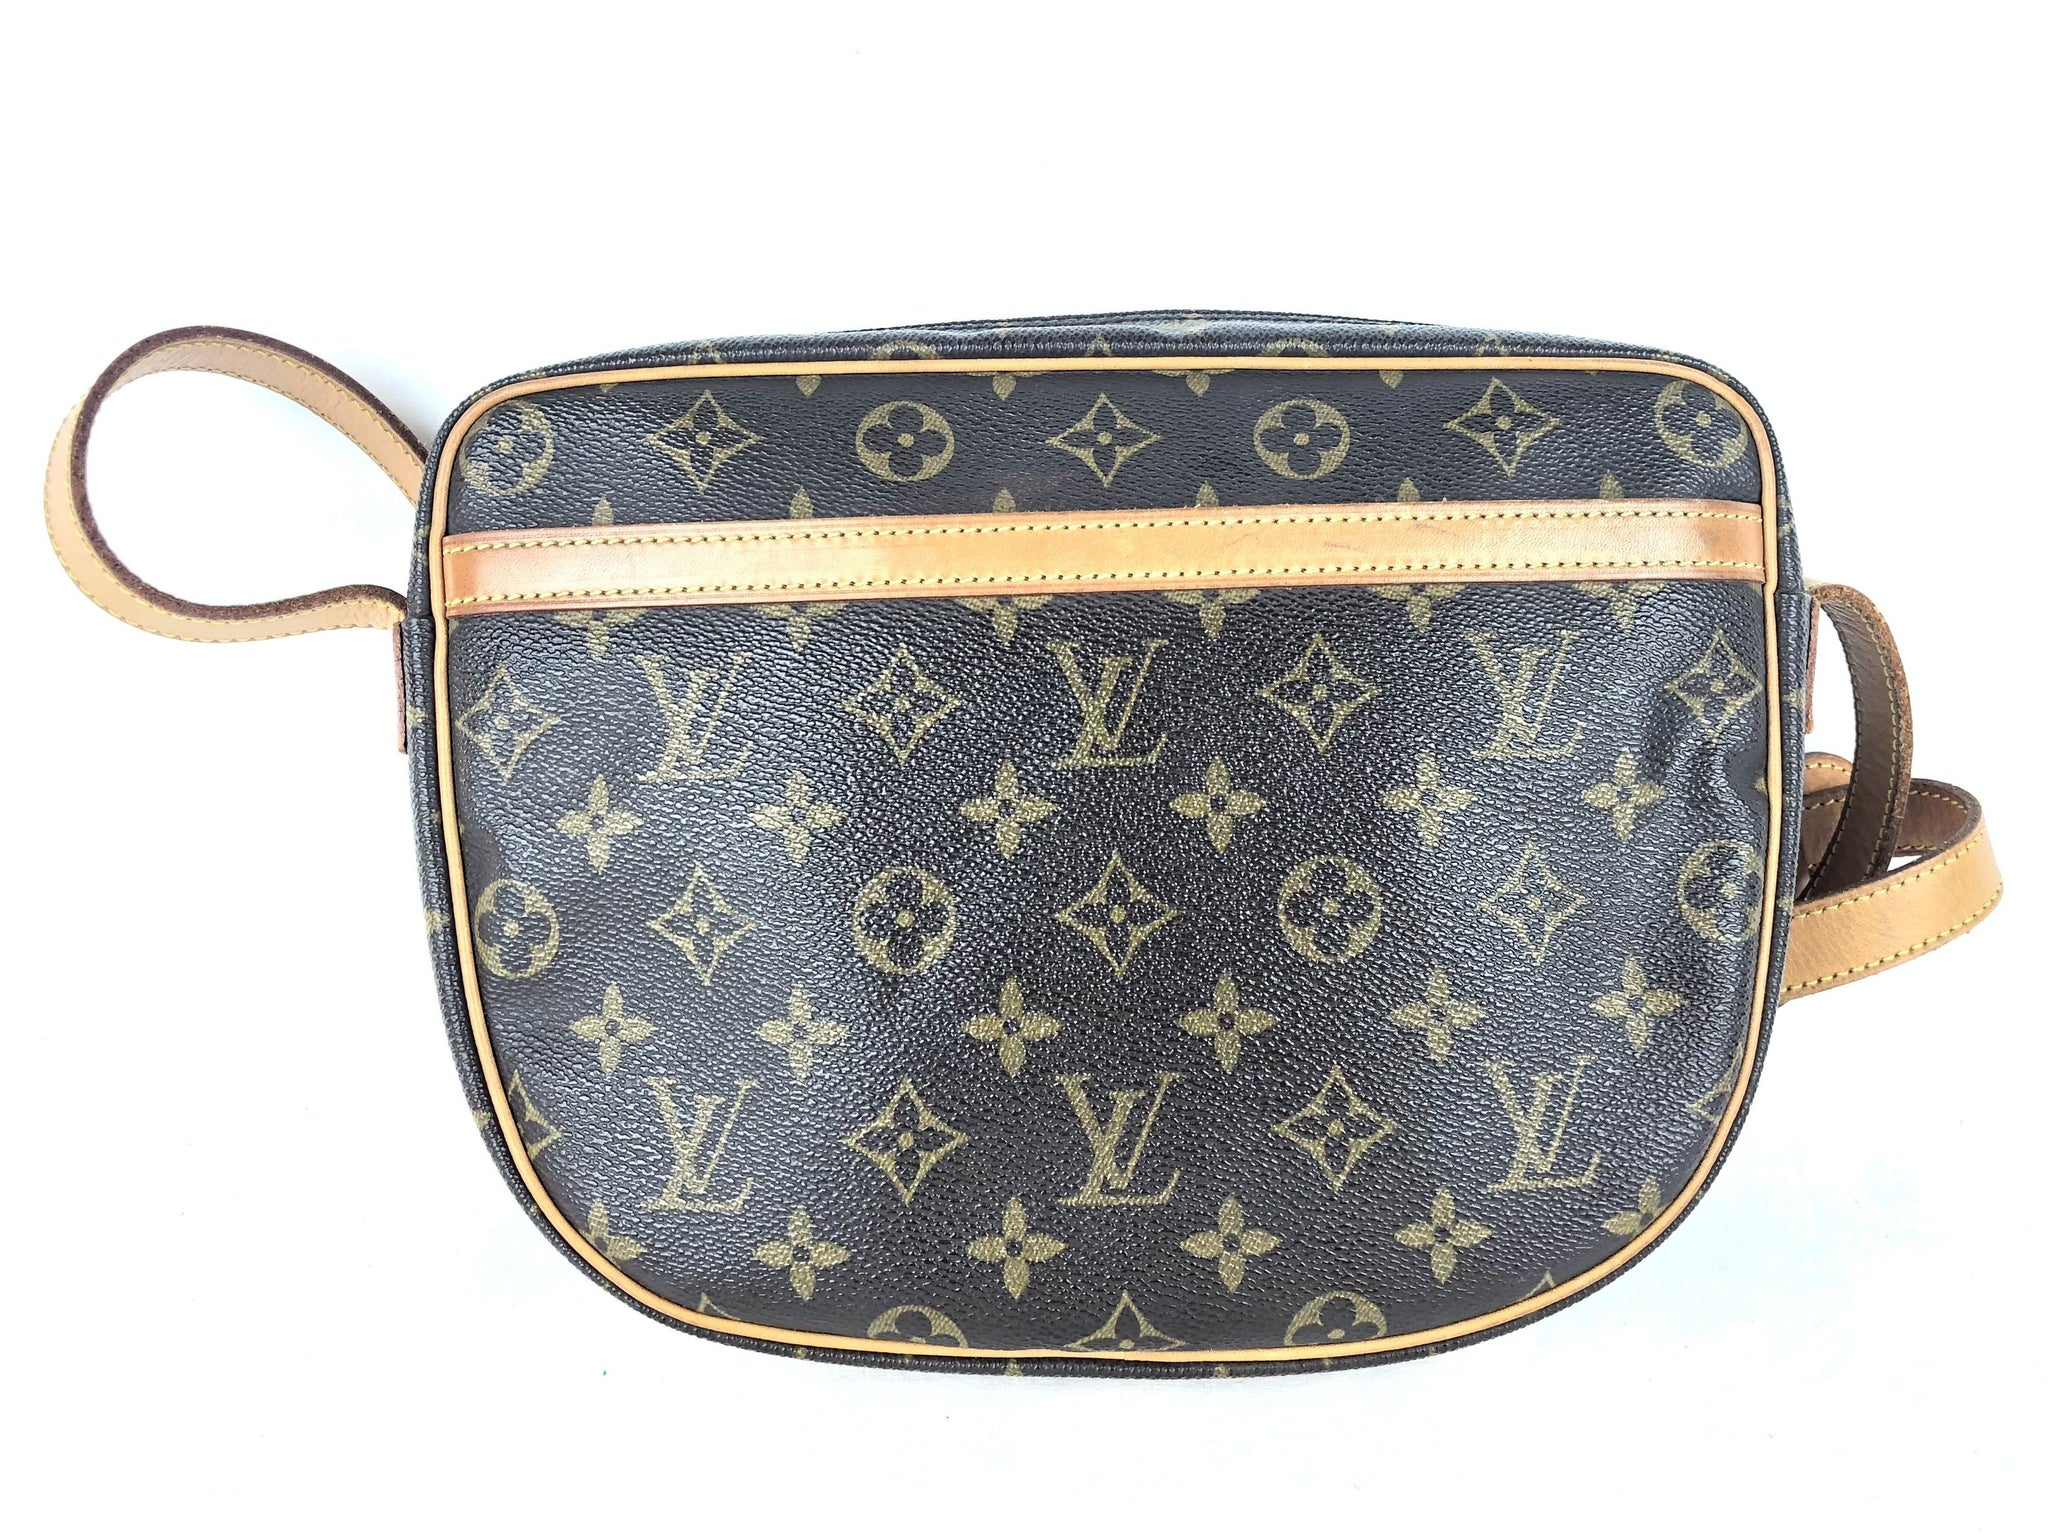 LOUIS VUITTON Monogram Juene Fille GM Crossbody Bag